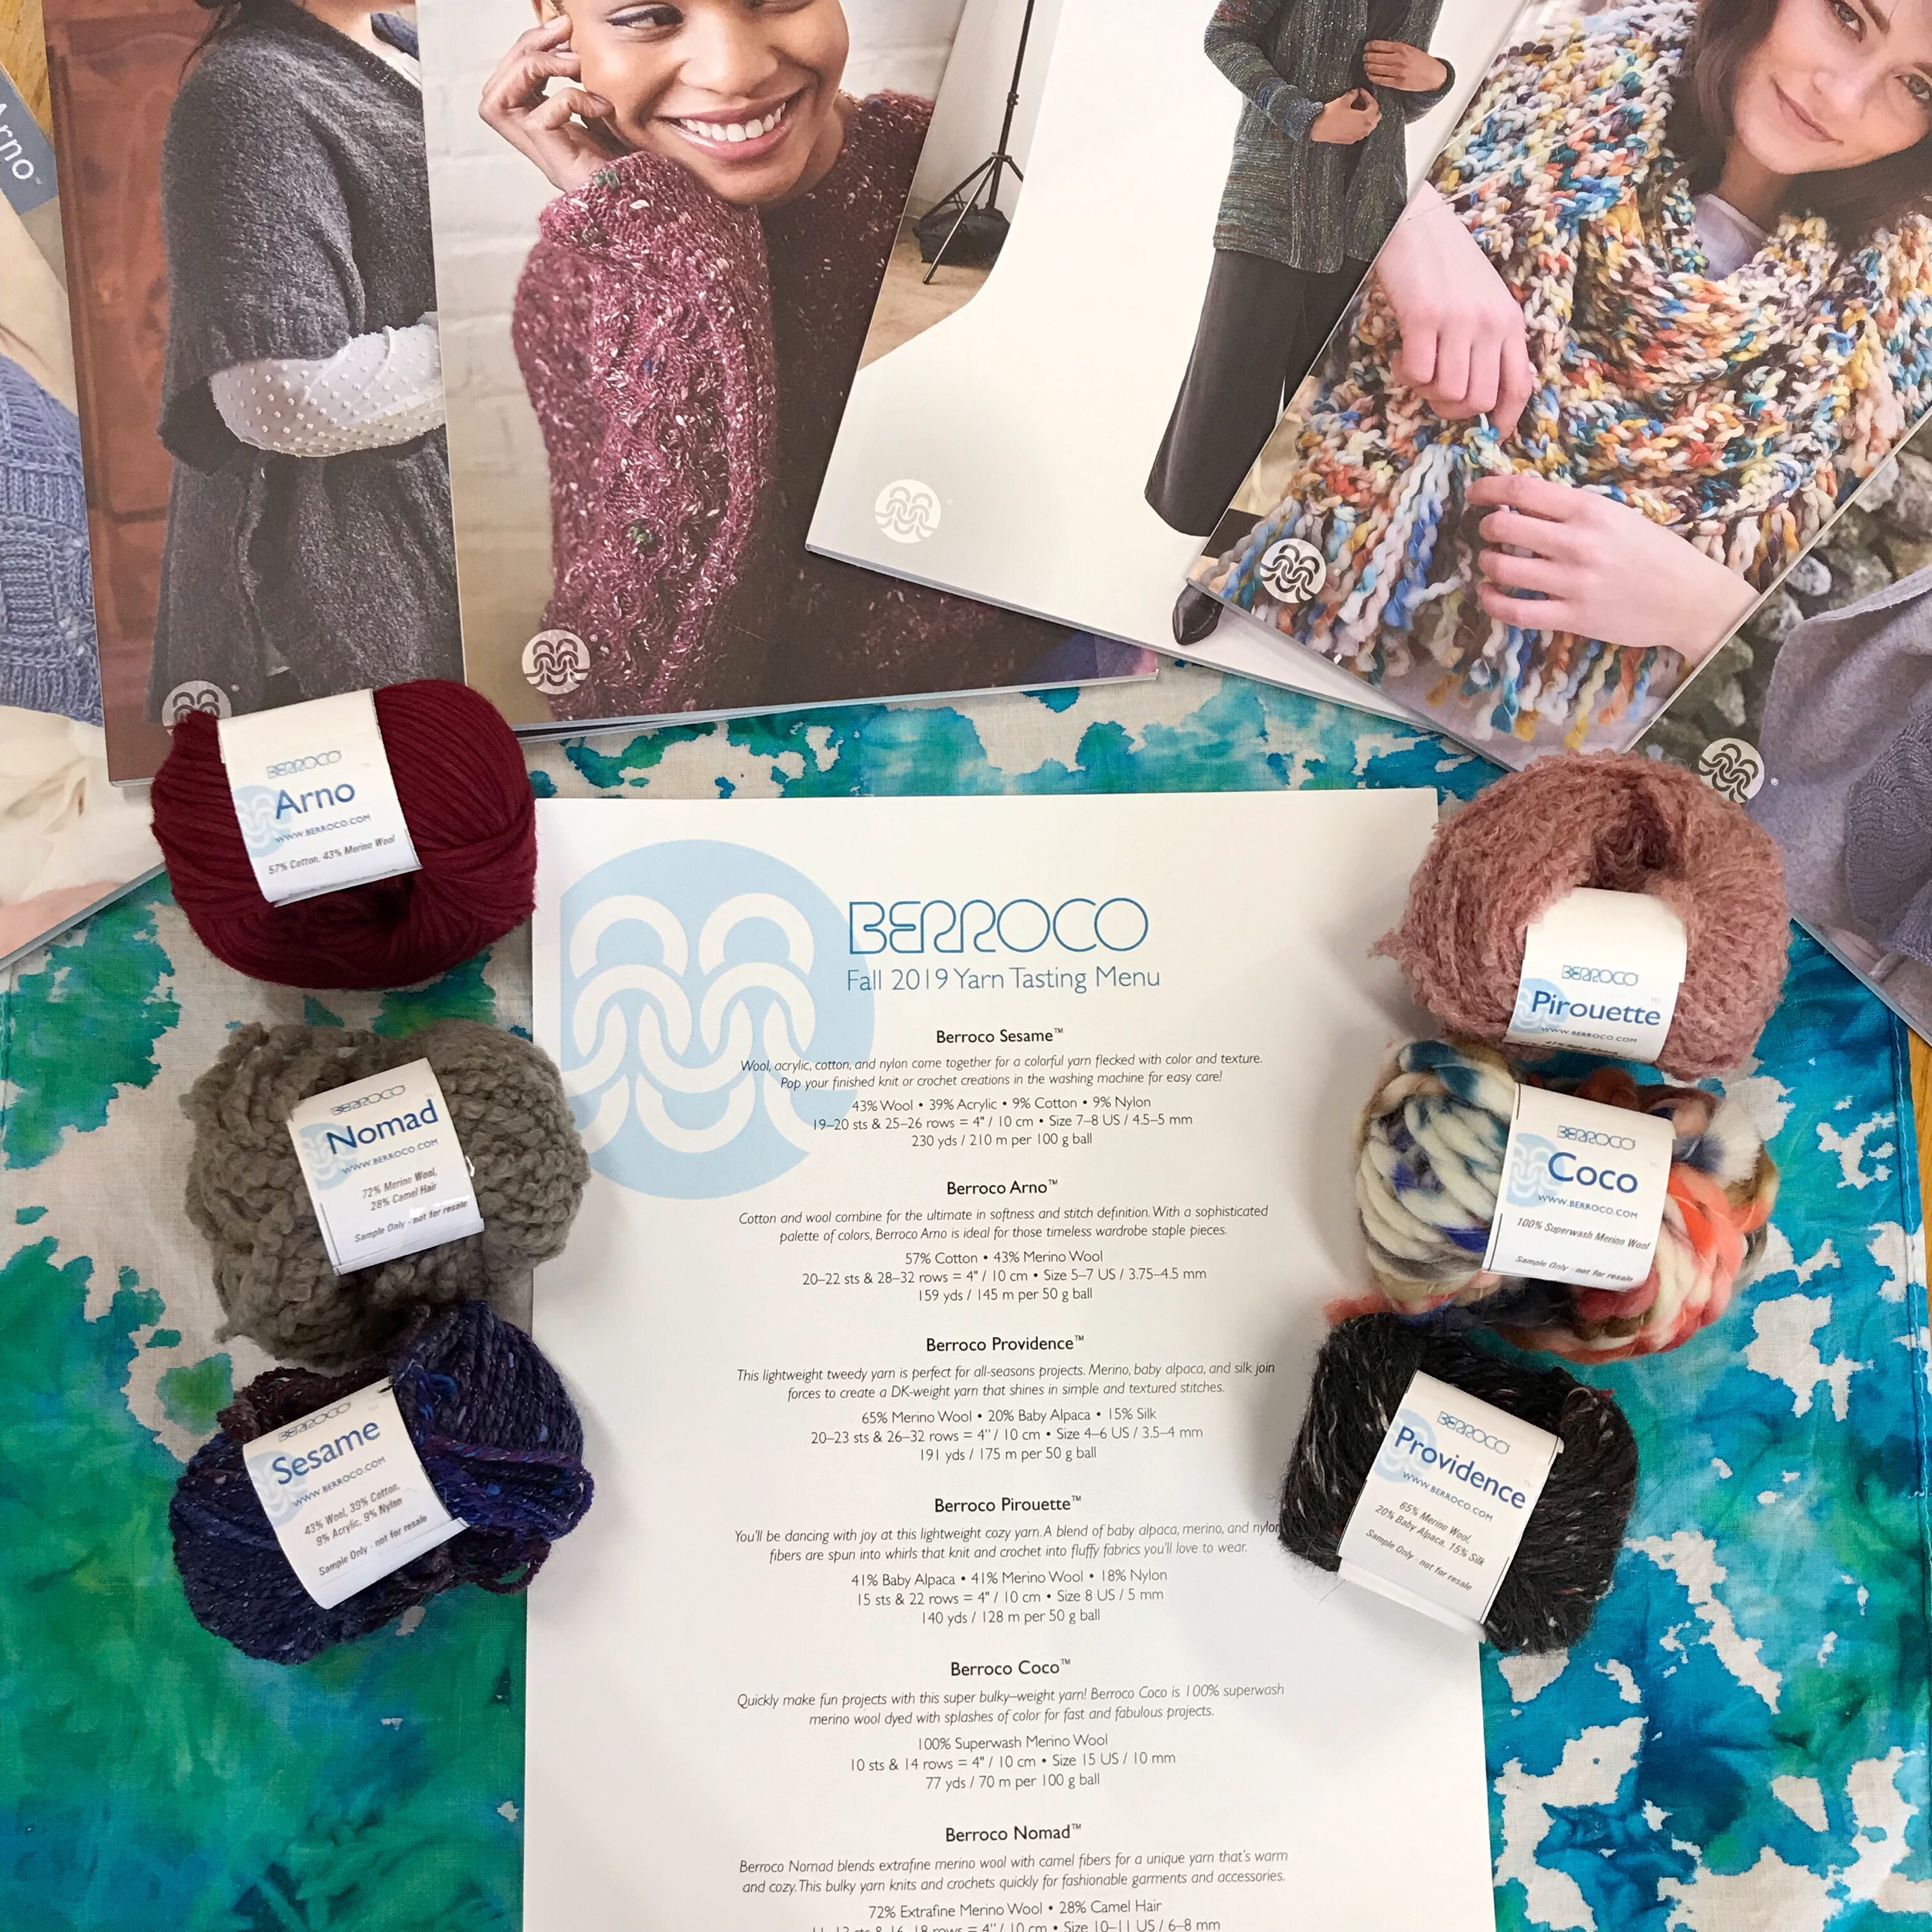 CURRENT CLASSES & EVENTS - Berroco Fall Yarn TastingAugust 14, 5:00-7:00pm | $12Berroco Fall Yarn TastingAugust 23, 5:00-7:00pm | $12Enjoy light refreshments, knittable samples of six Berroco yarns, and preview pattern collections for Fall 2019! Bonus, if you are participating in the Slow Yarn Crawl, collect an extra stamp for attending a yarn tasting!Project CircleAugust 30, 5:00-7:00pm | no charge.Join us to work on your longer term projects!